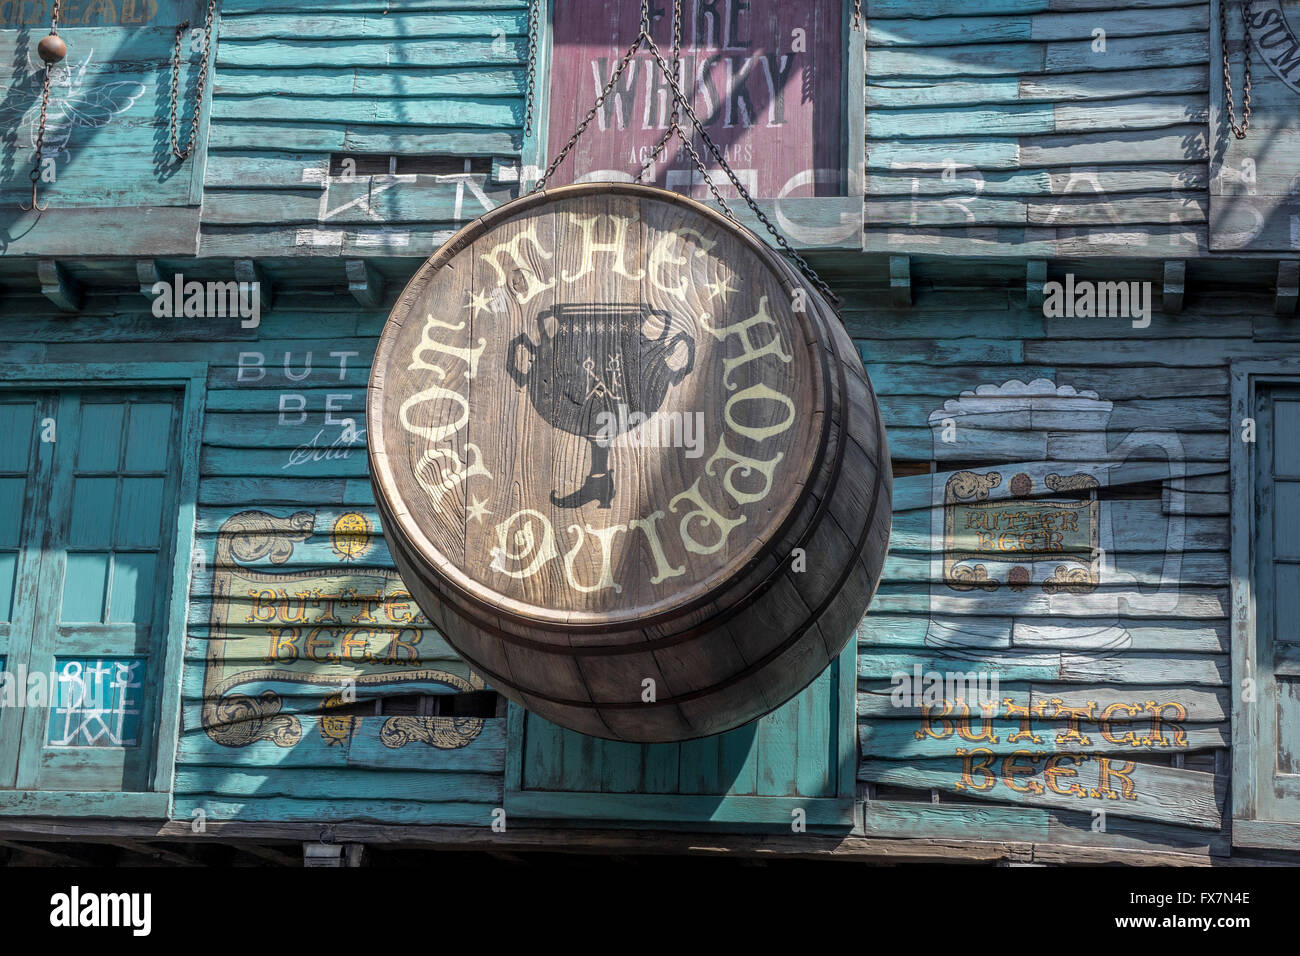 The Hopping Pot Sign In Diagon Alley At The Wizarding World Of Harry Potter Universal Studios Orlando Florida - Stock Image